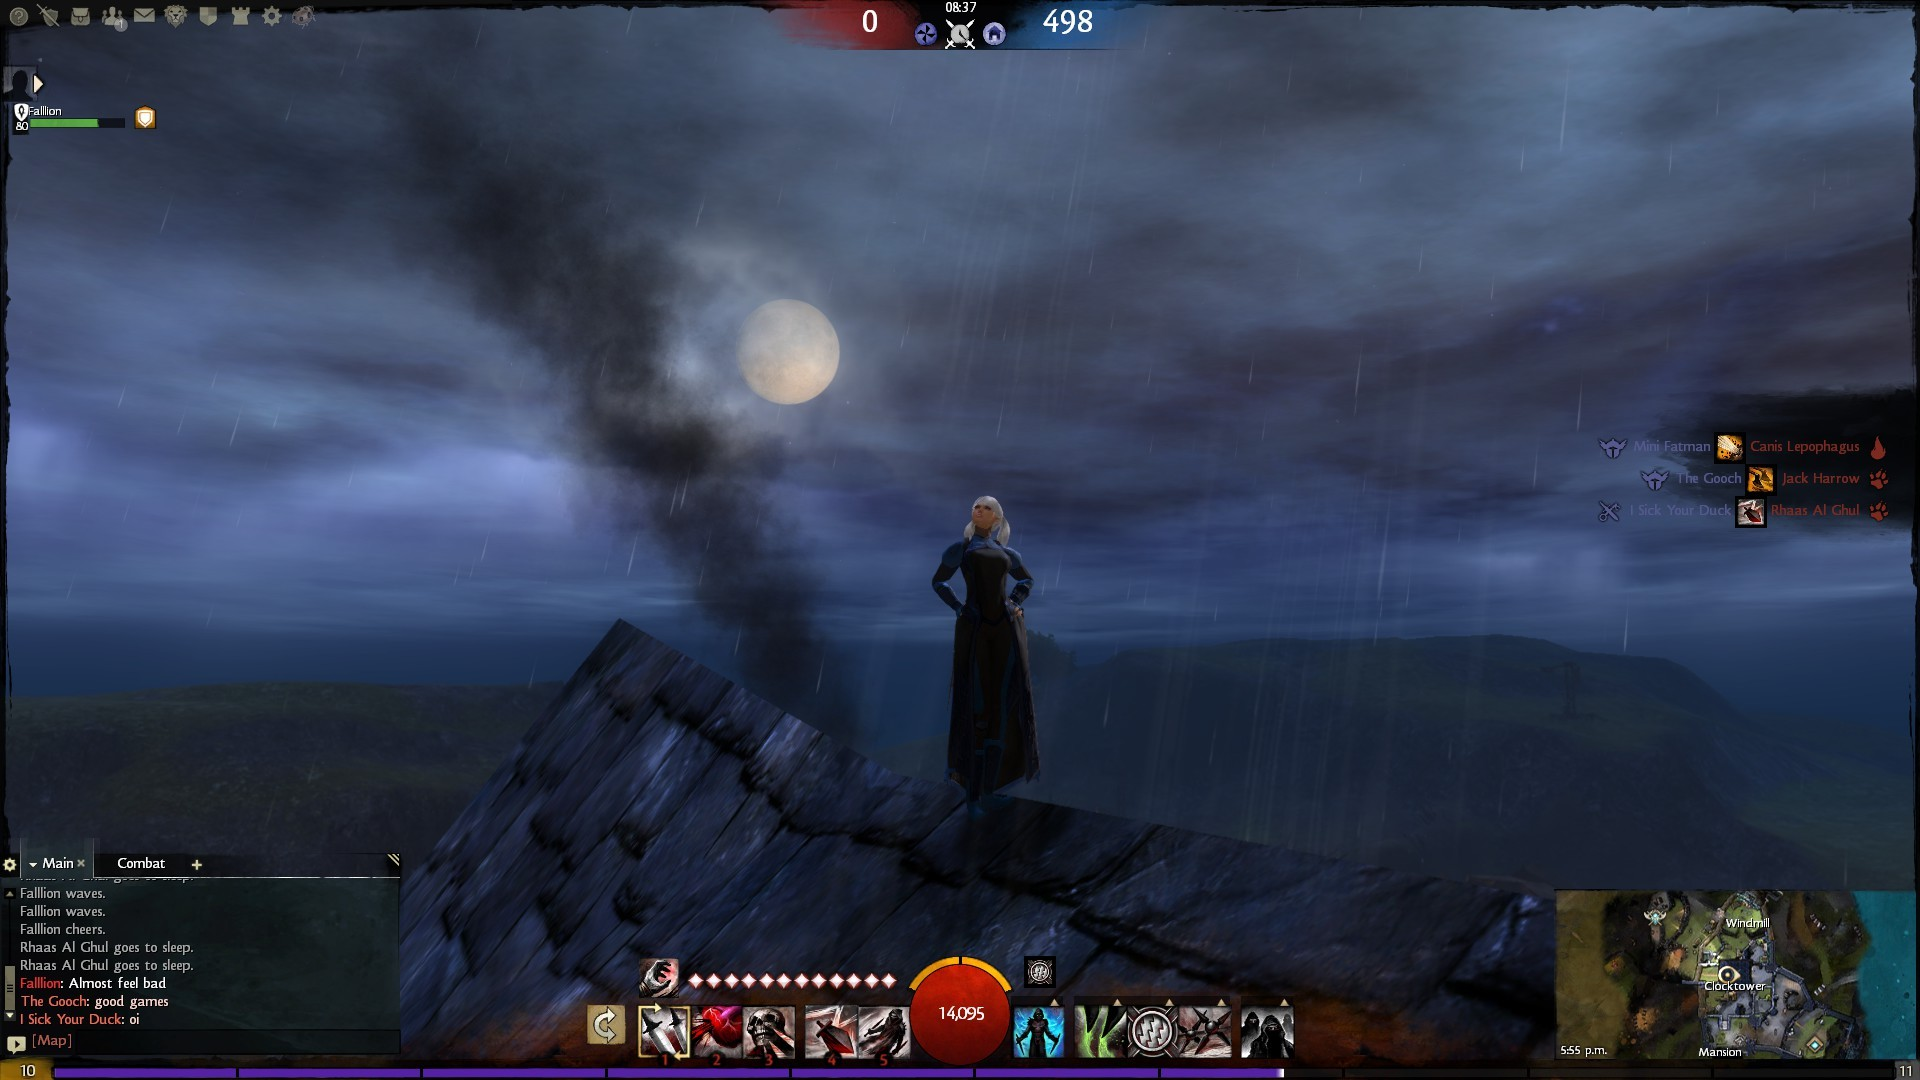 Guild Wars 2 - Just waiting ontop of the clocktower for Red Team.